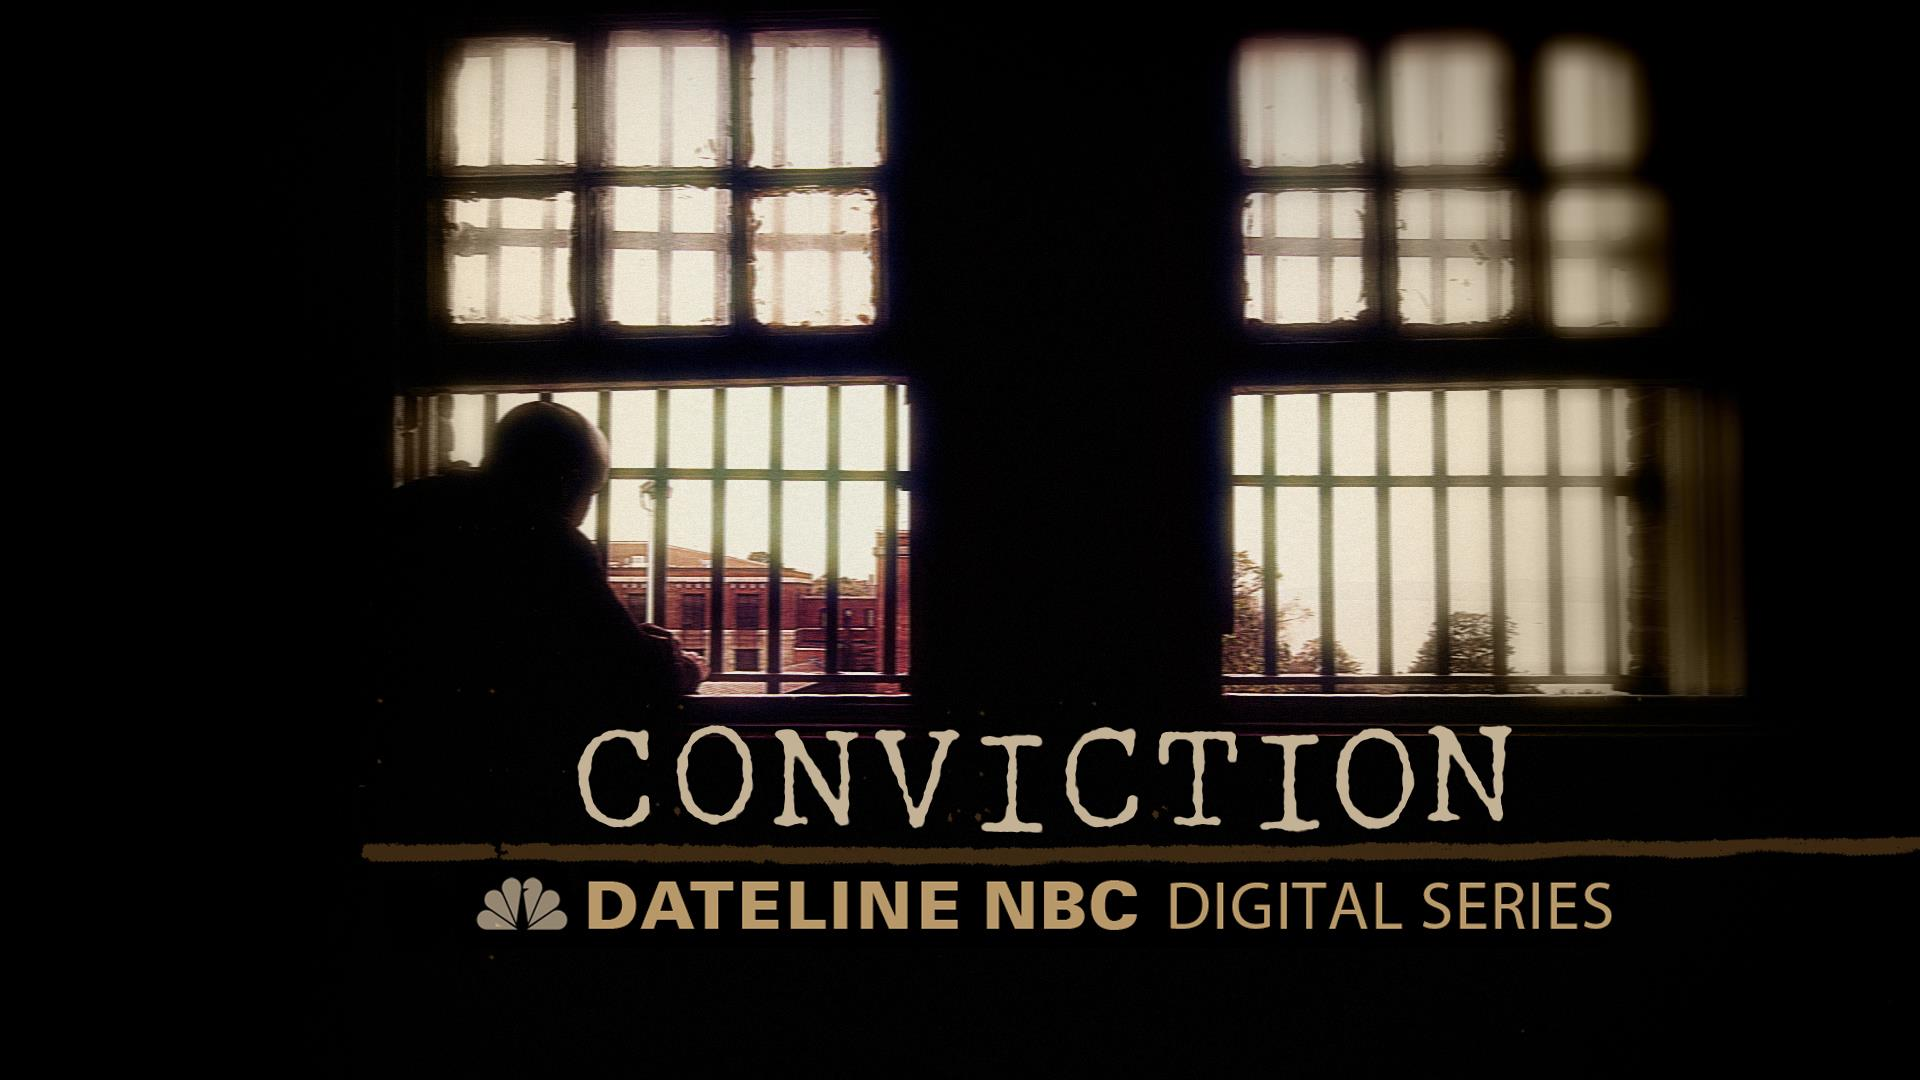 Conviction  >> Dateline Digital Series Conviction Nbc News